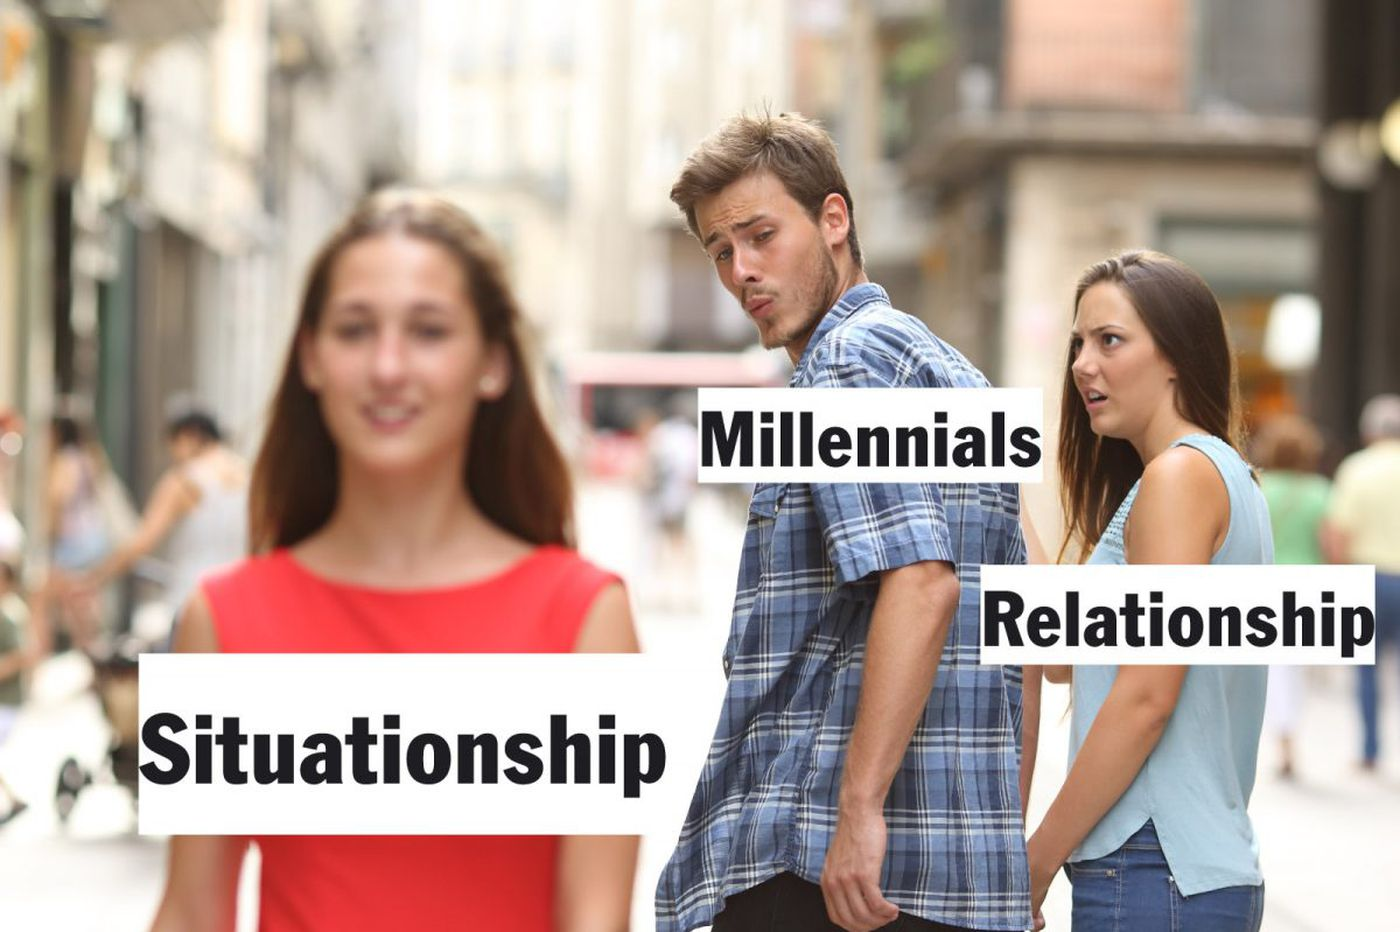 Situationships: Why young people aren't making it official